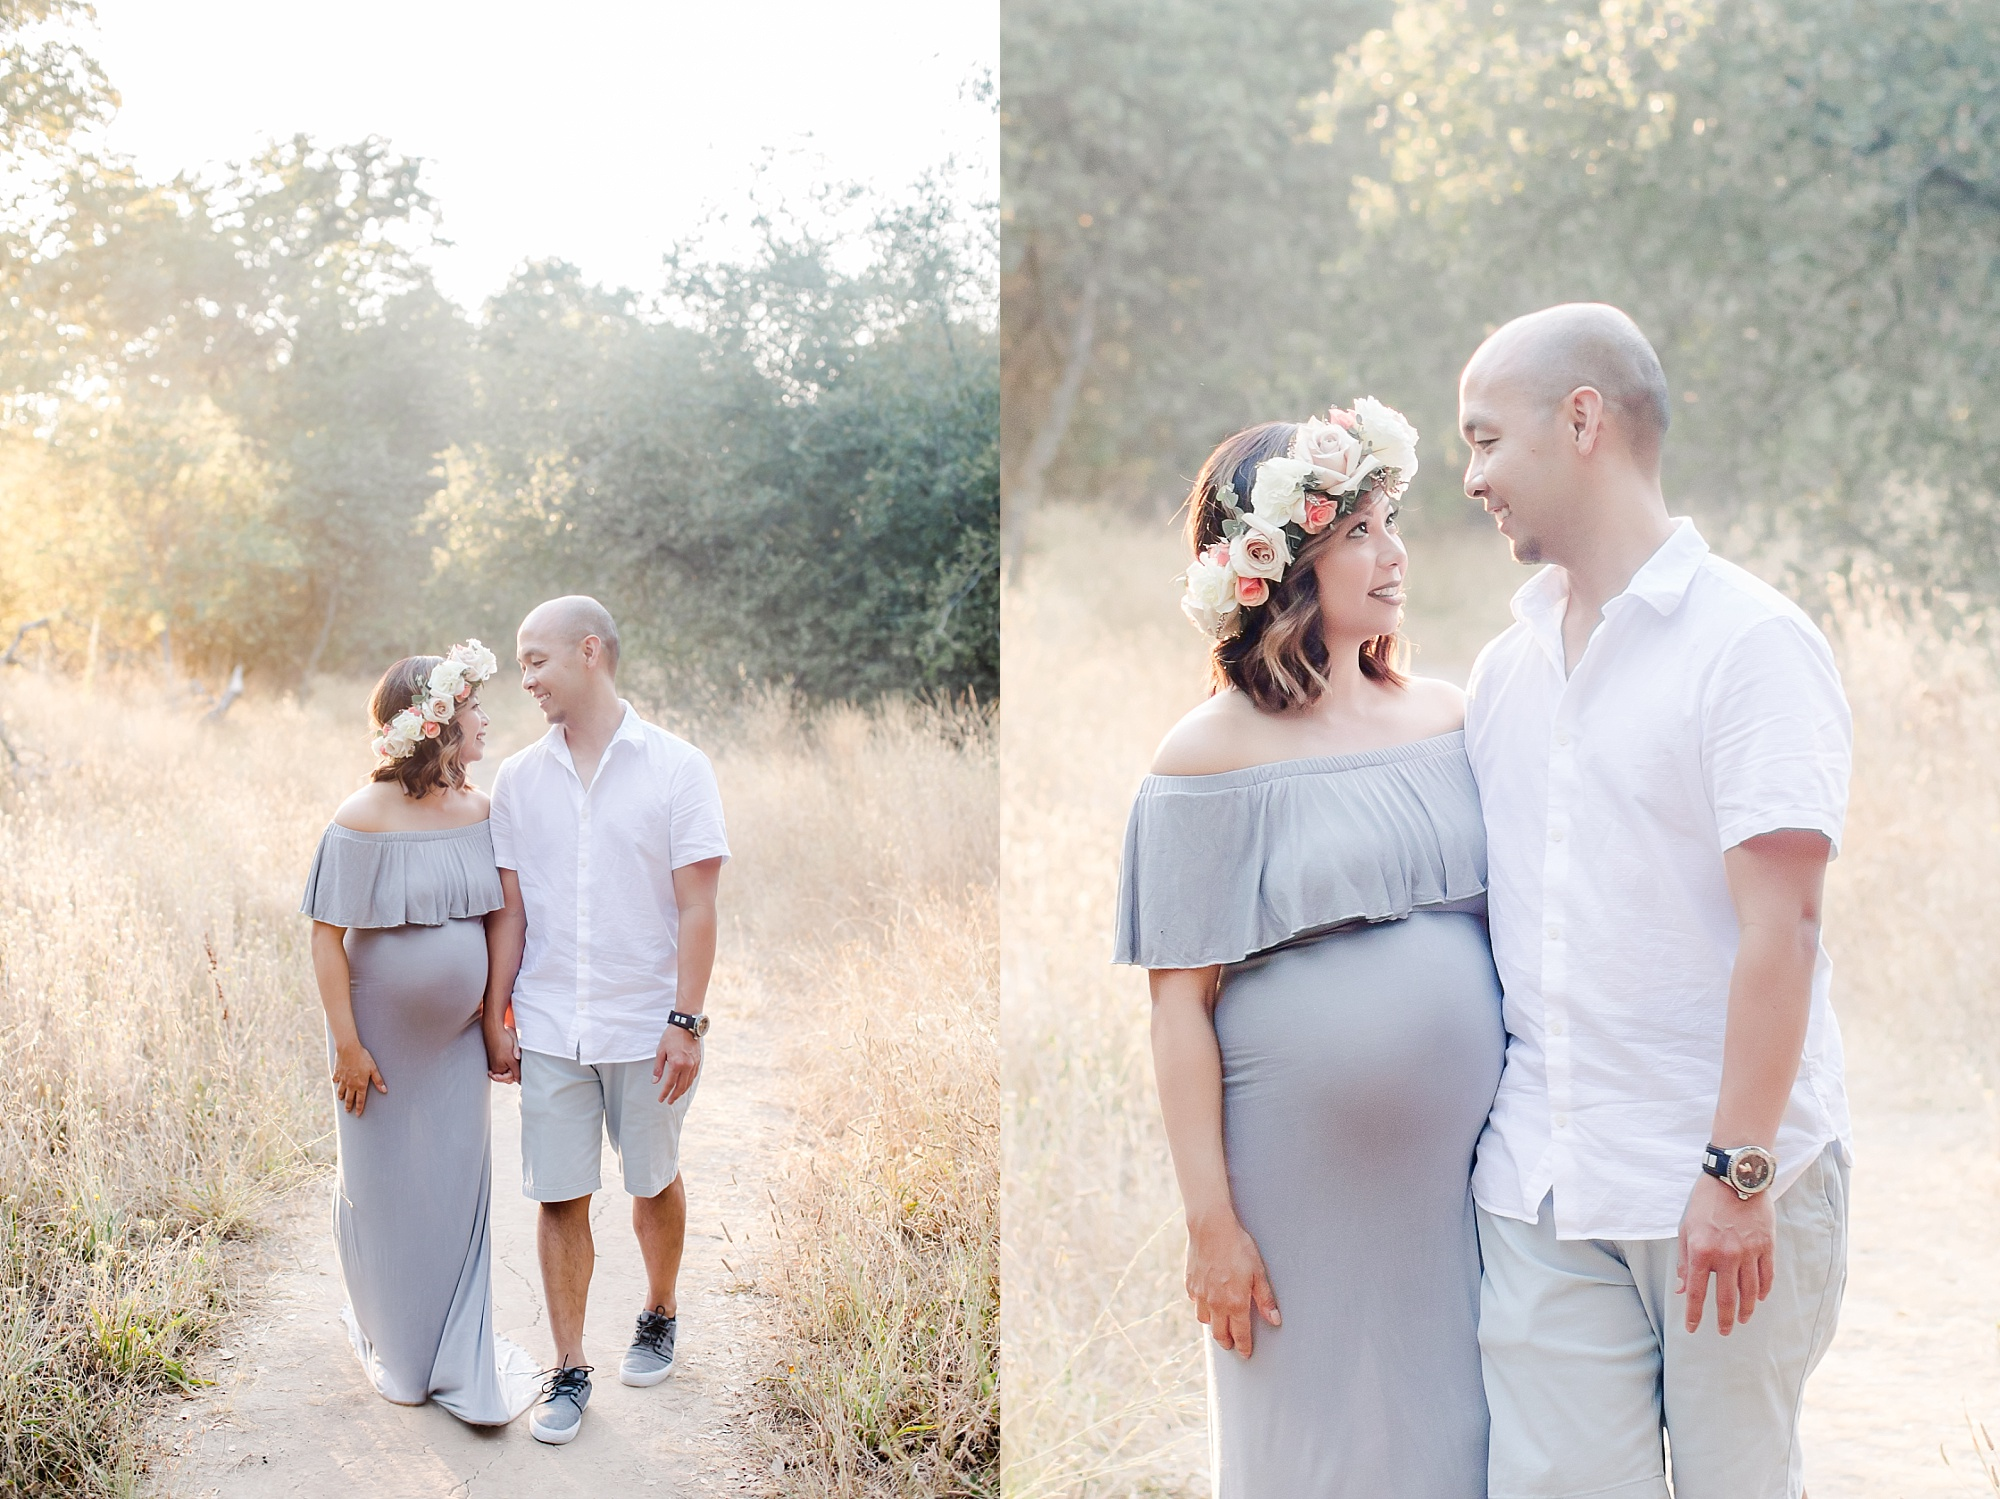 Roseville Maternity Photographer